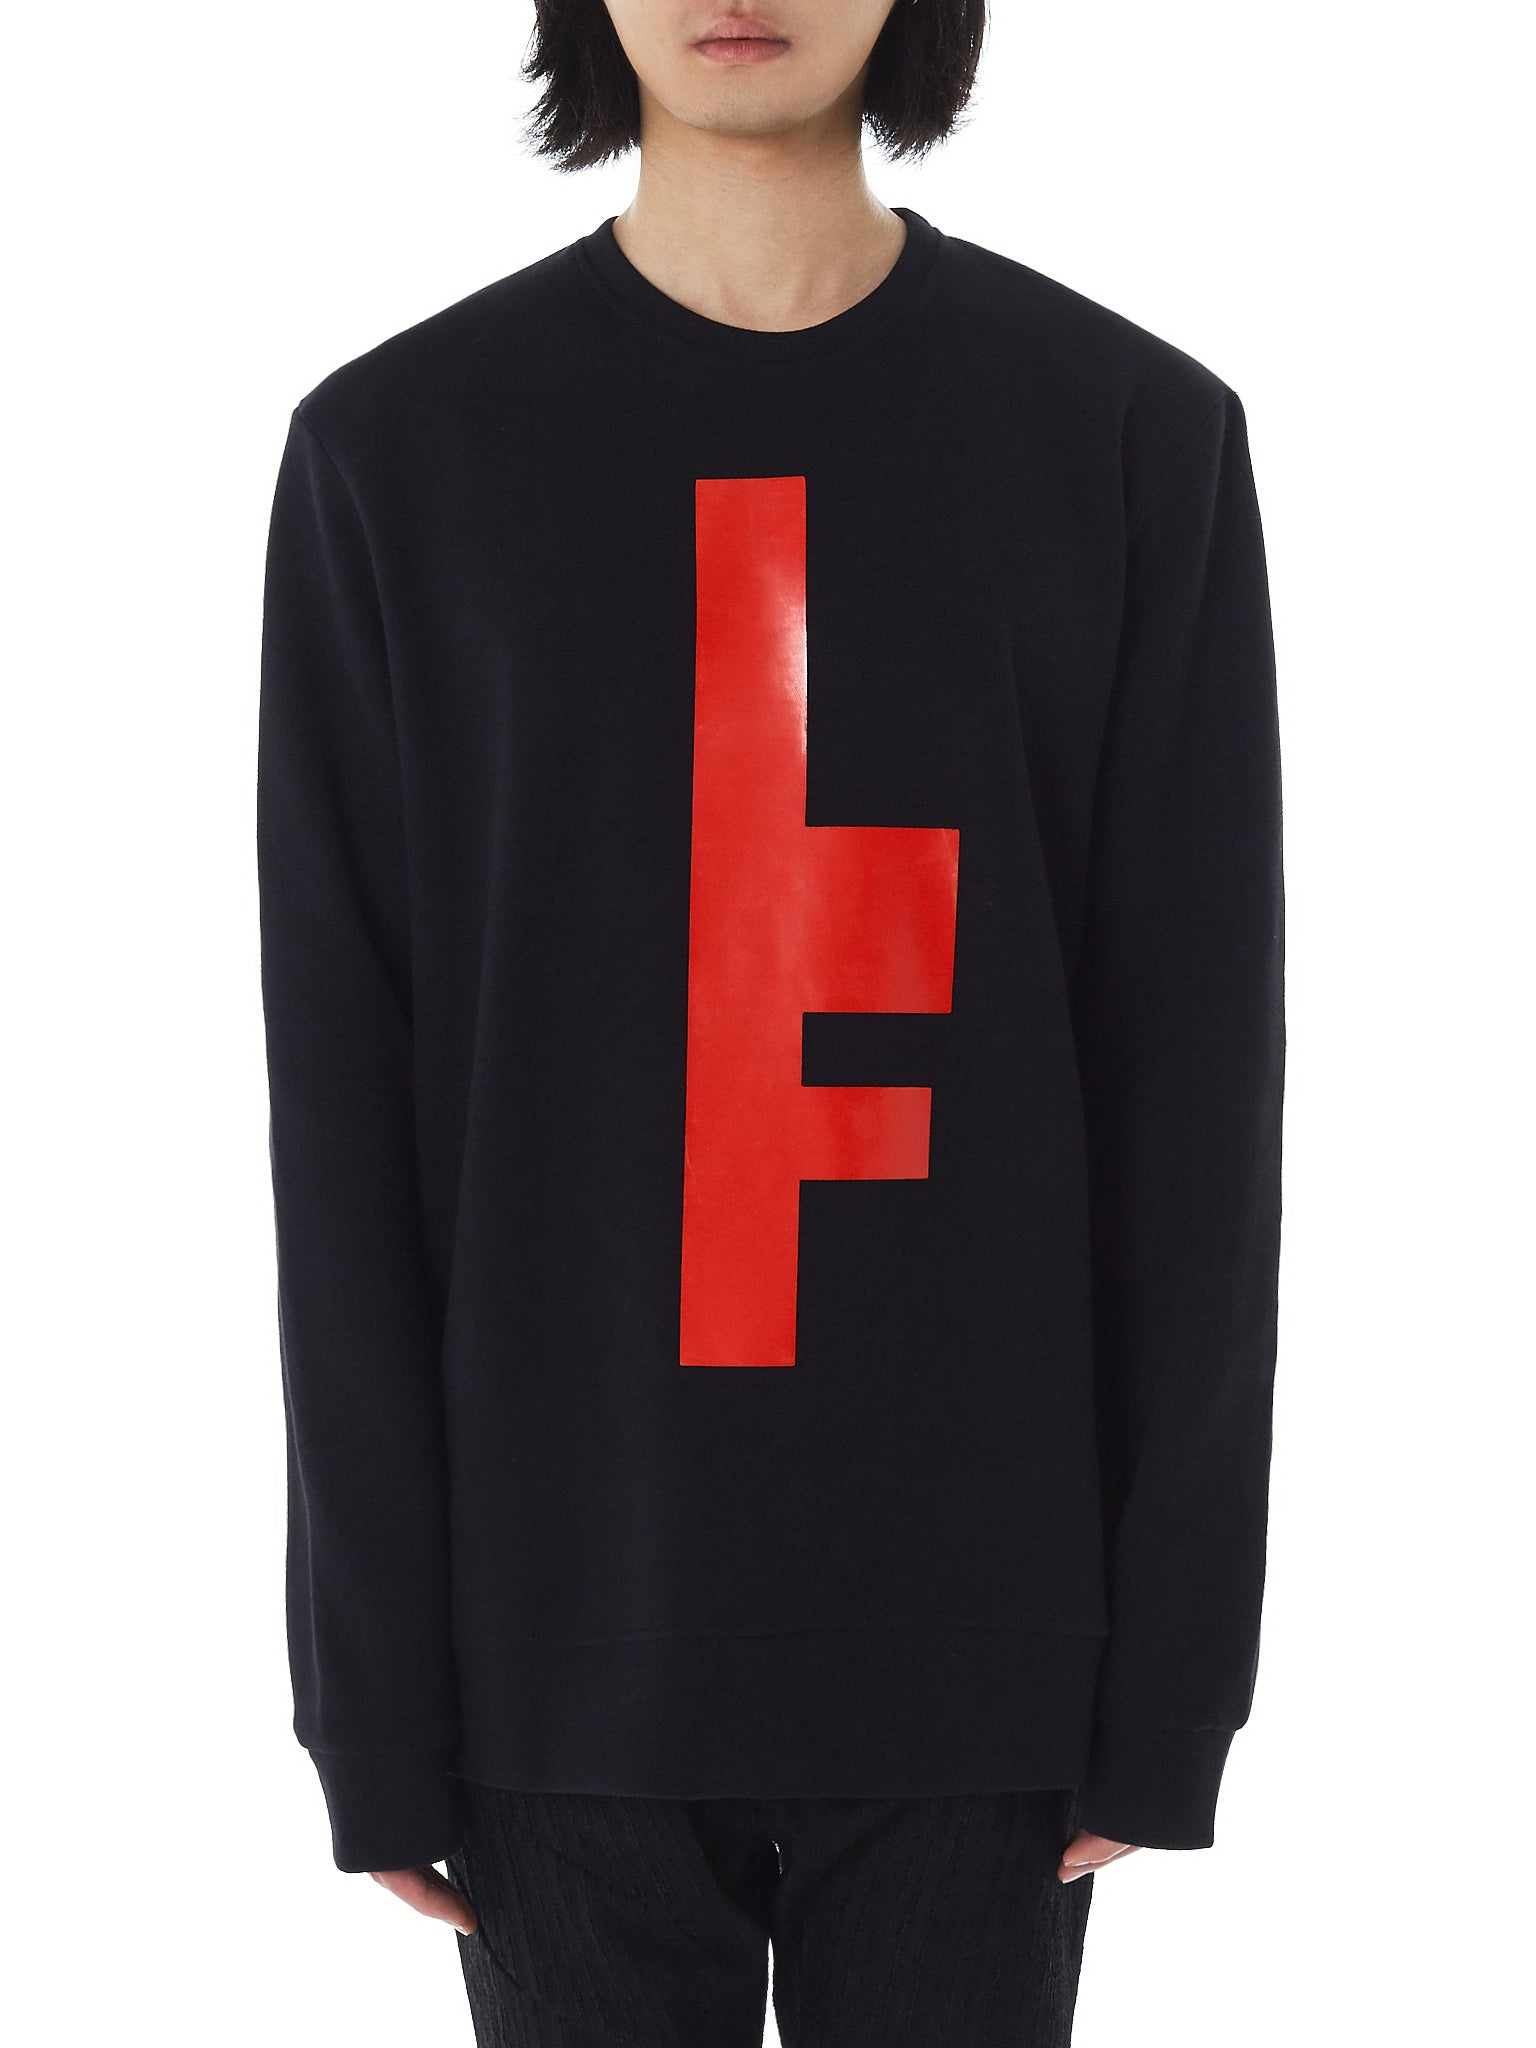 Lost & Found Rooms Sweater - Hlorenzo Front